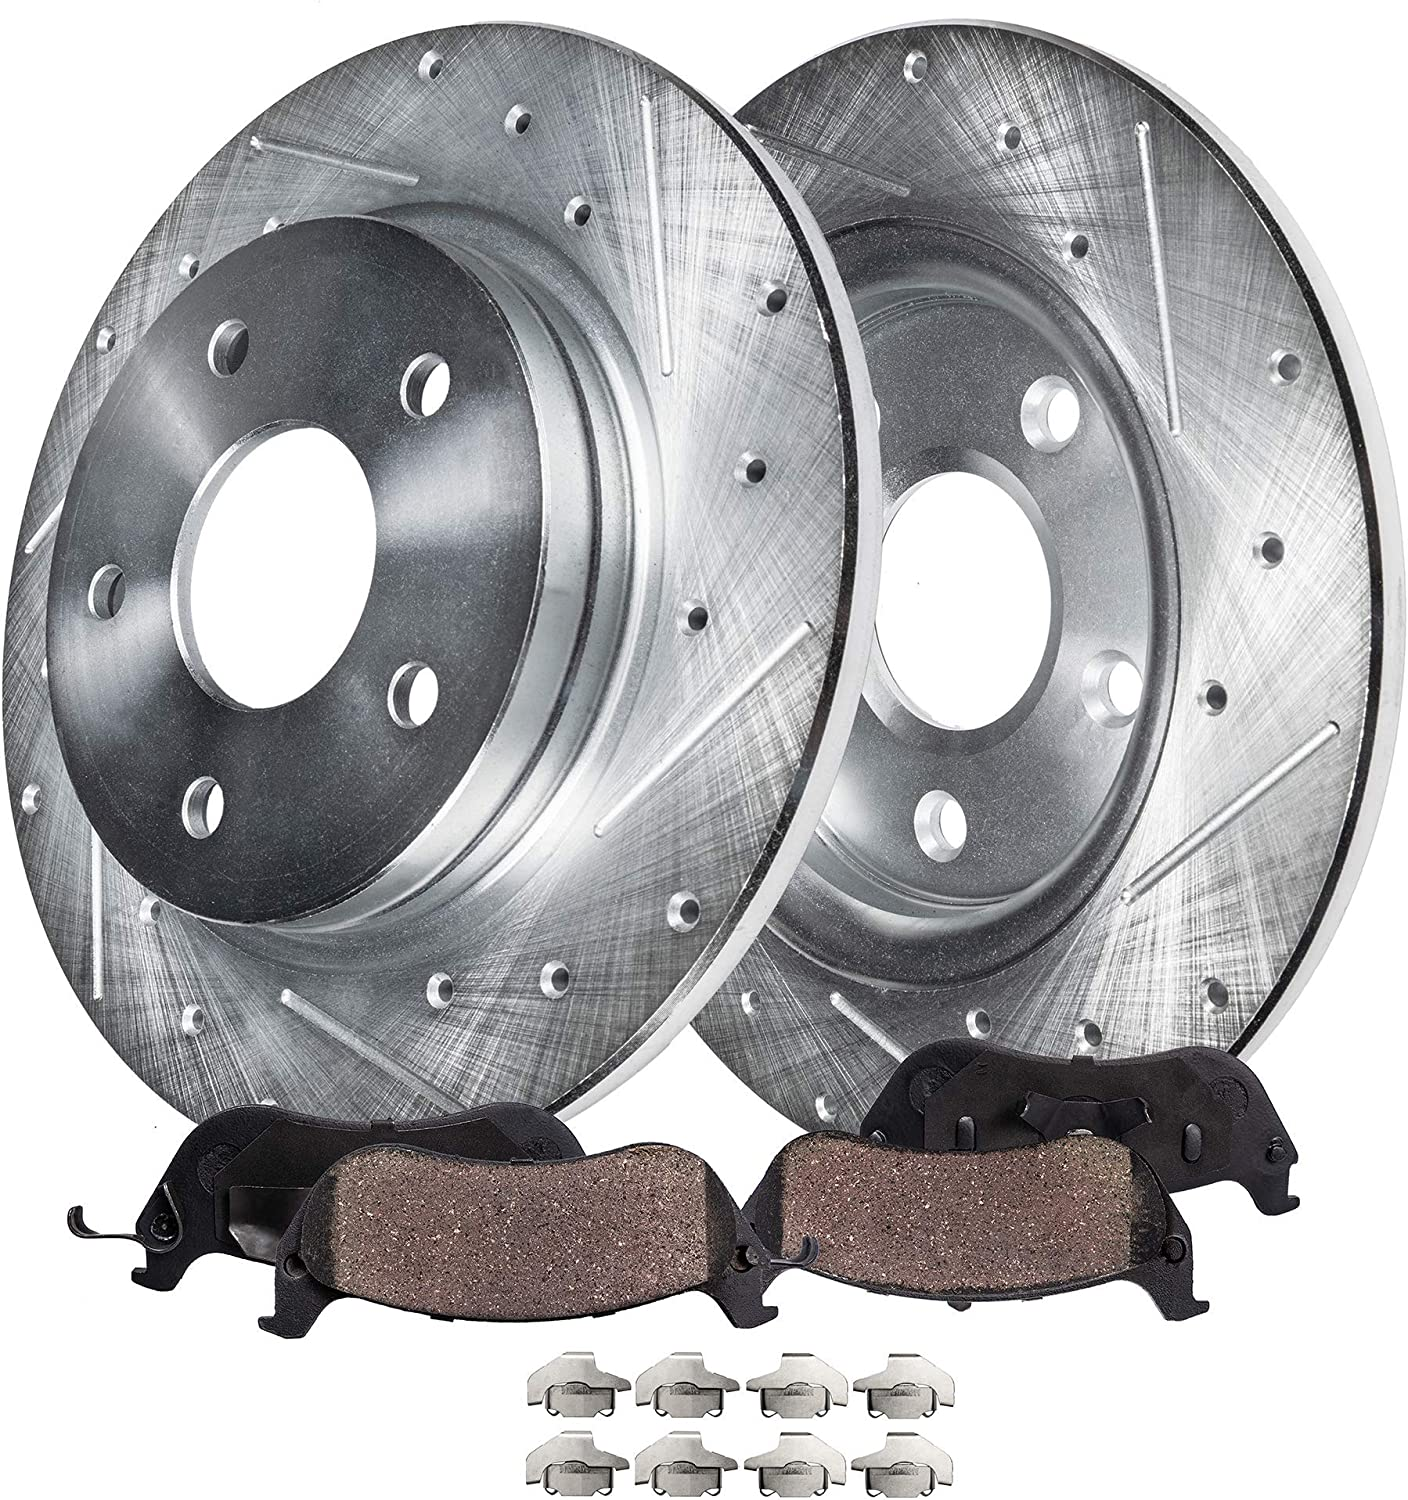 Rotors Ceramic Pads F OE Replacement See Desc. 2012 2013 Ram Cargo Van